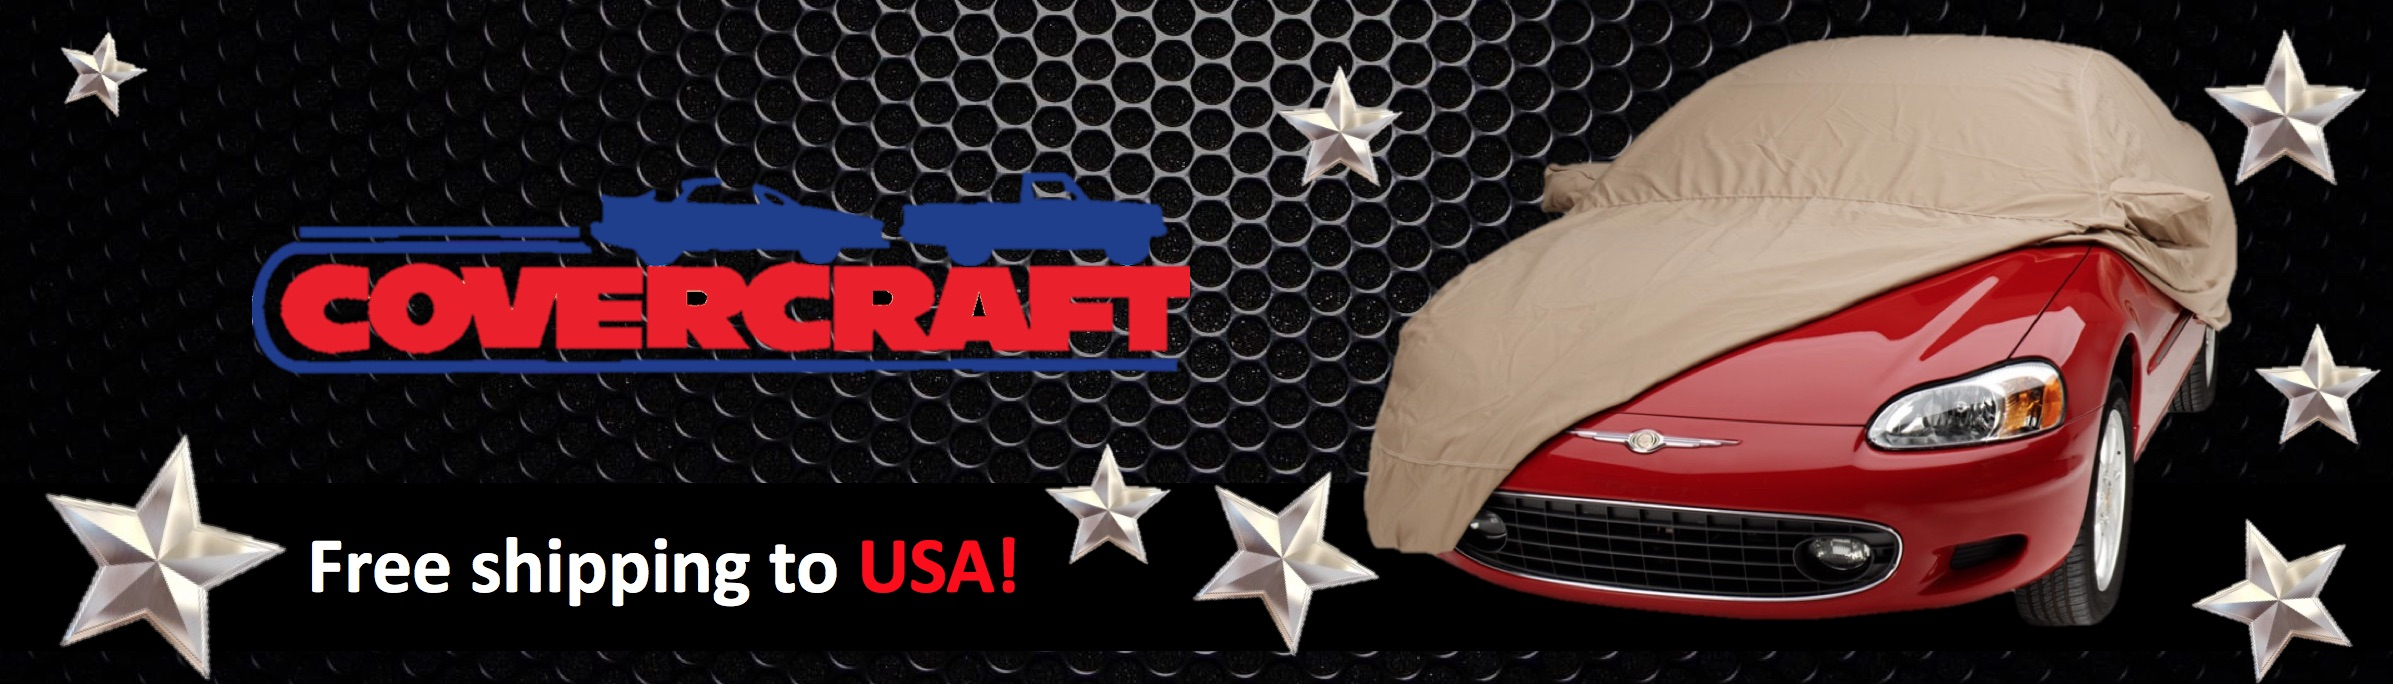 Covercraft Brand Banner - US